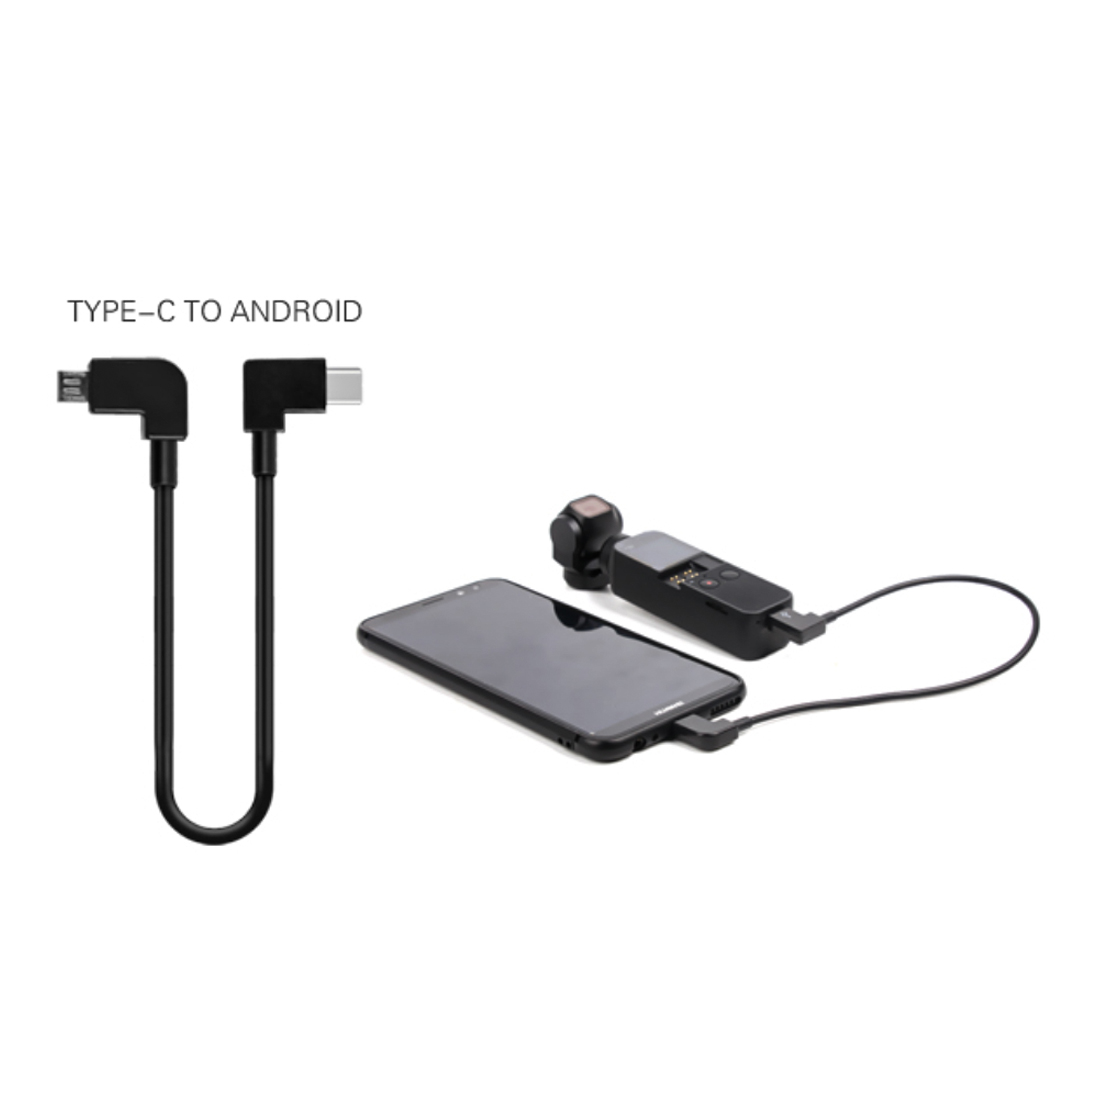 New Arrival 30cm Gimbal Camera Mobile Phone Data Extension Cable Type-c to /Micro USB Adapter for DJI Osmo Pocket